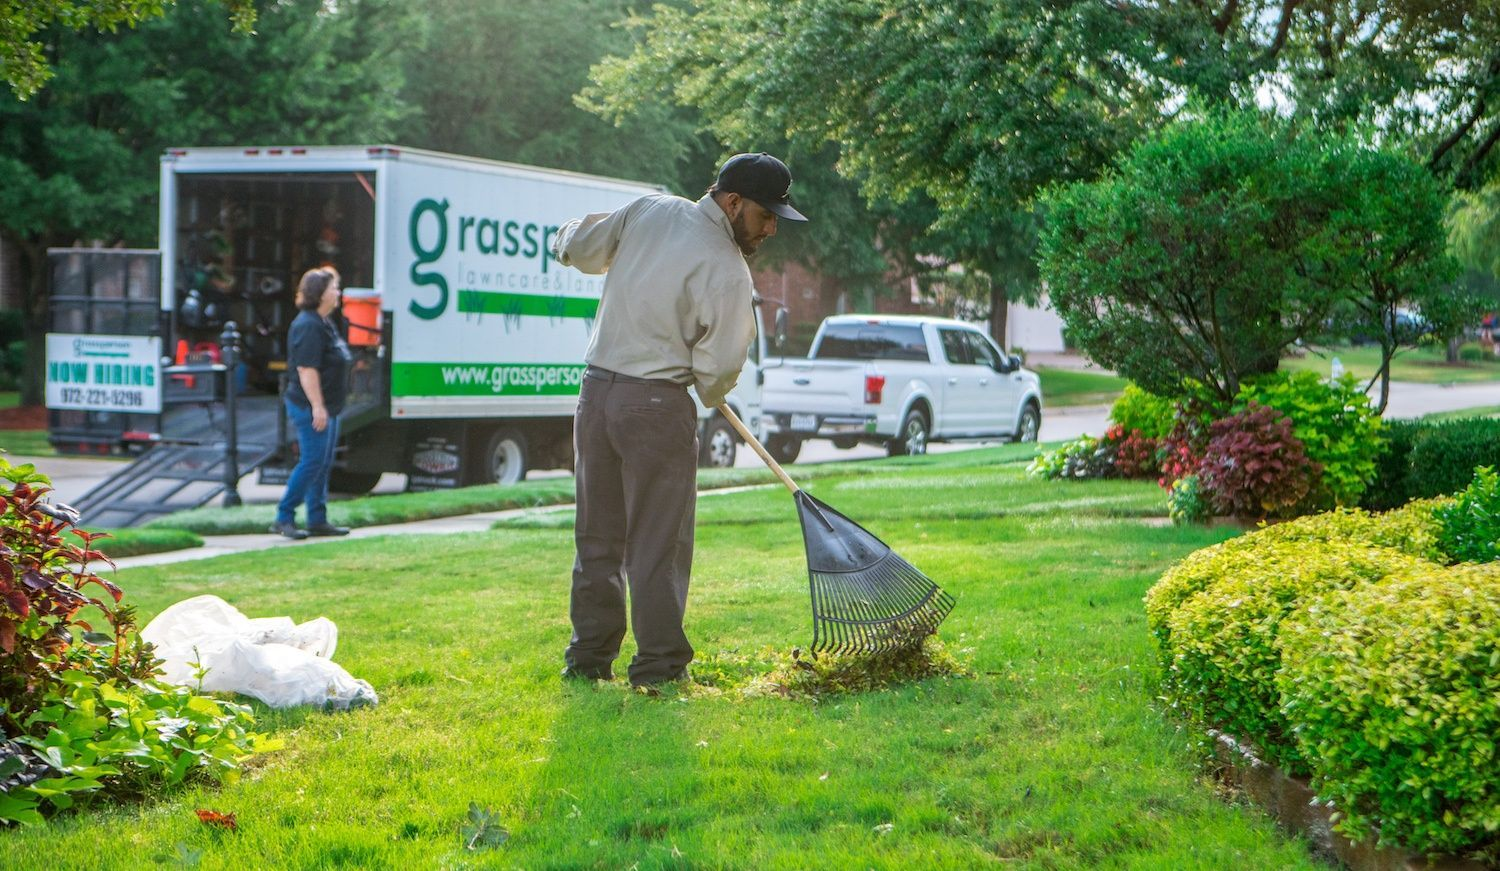 Grassperson lawn care and landscape truck and crew performing landscape maintenance